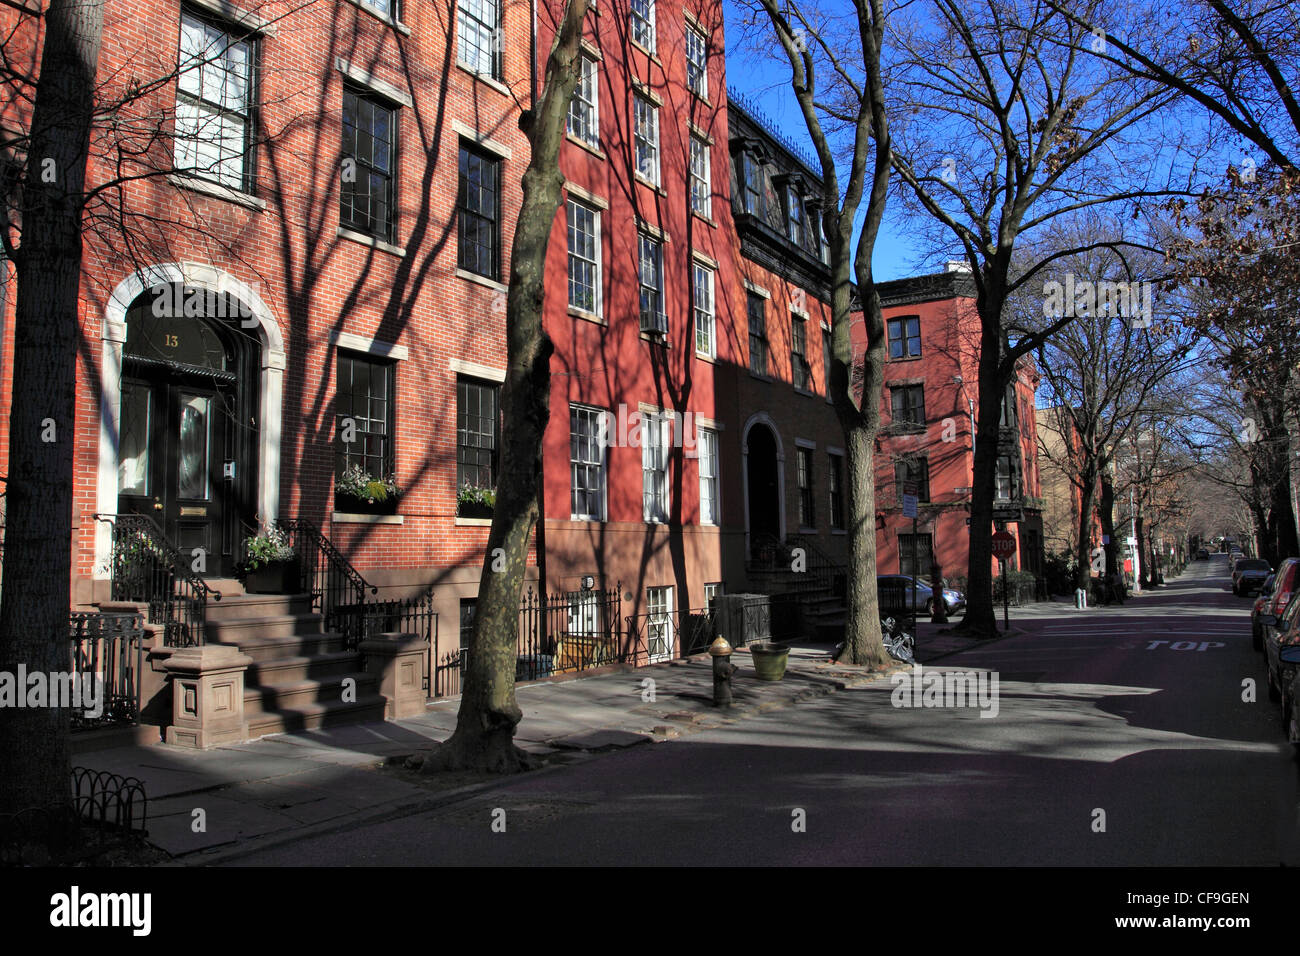 Old new york brownstone stockfotos old new york brownstone bilder alamy - New york wohnungen ...